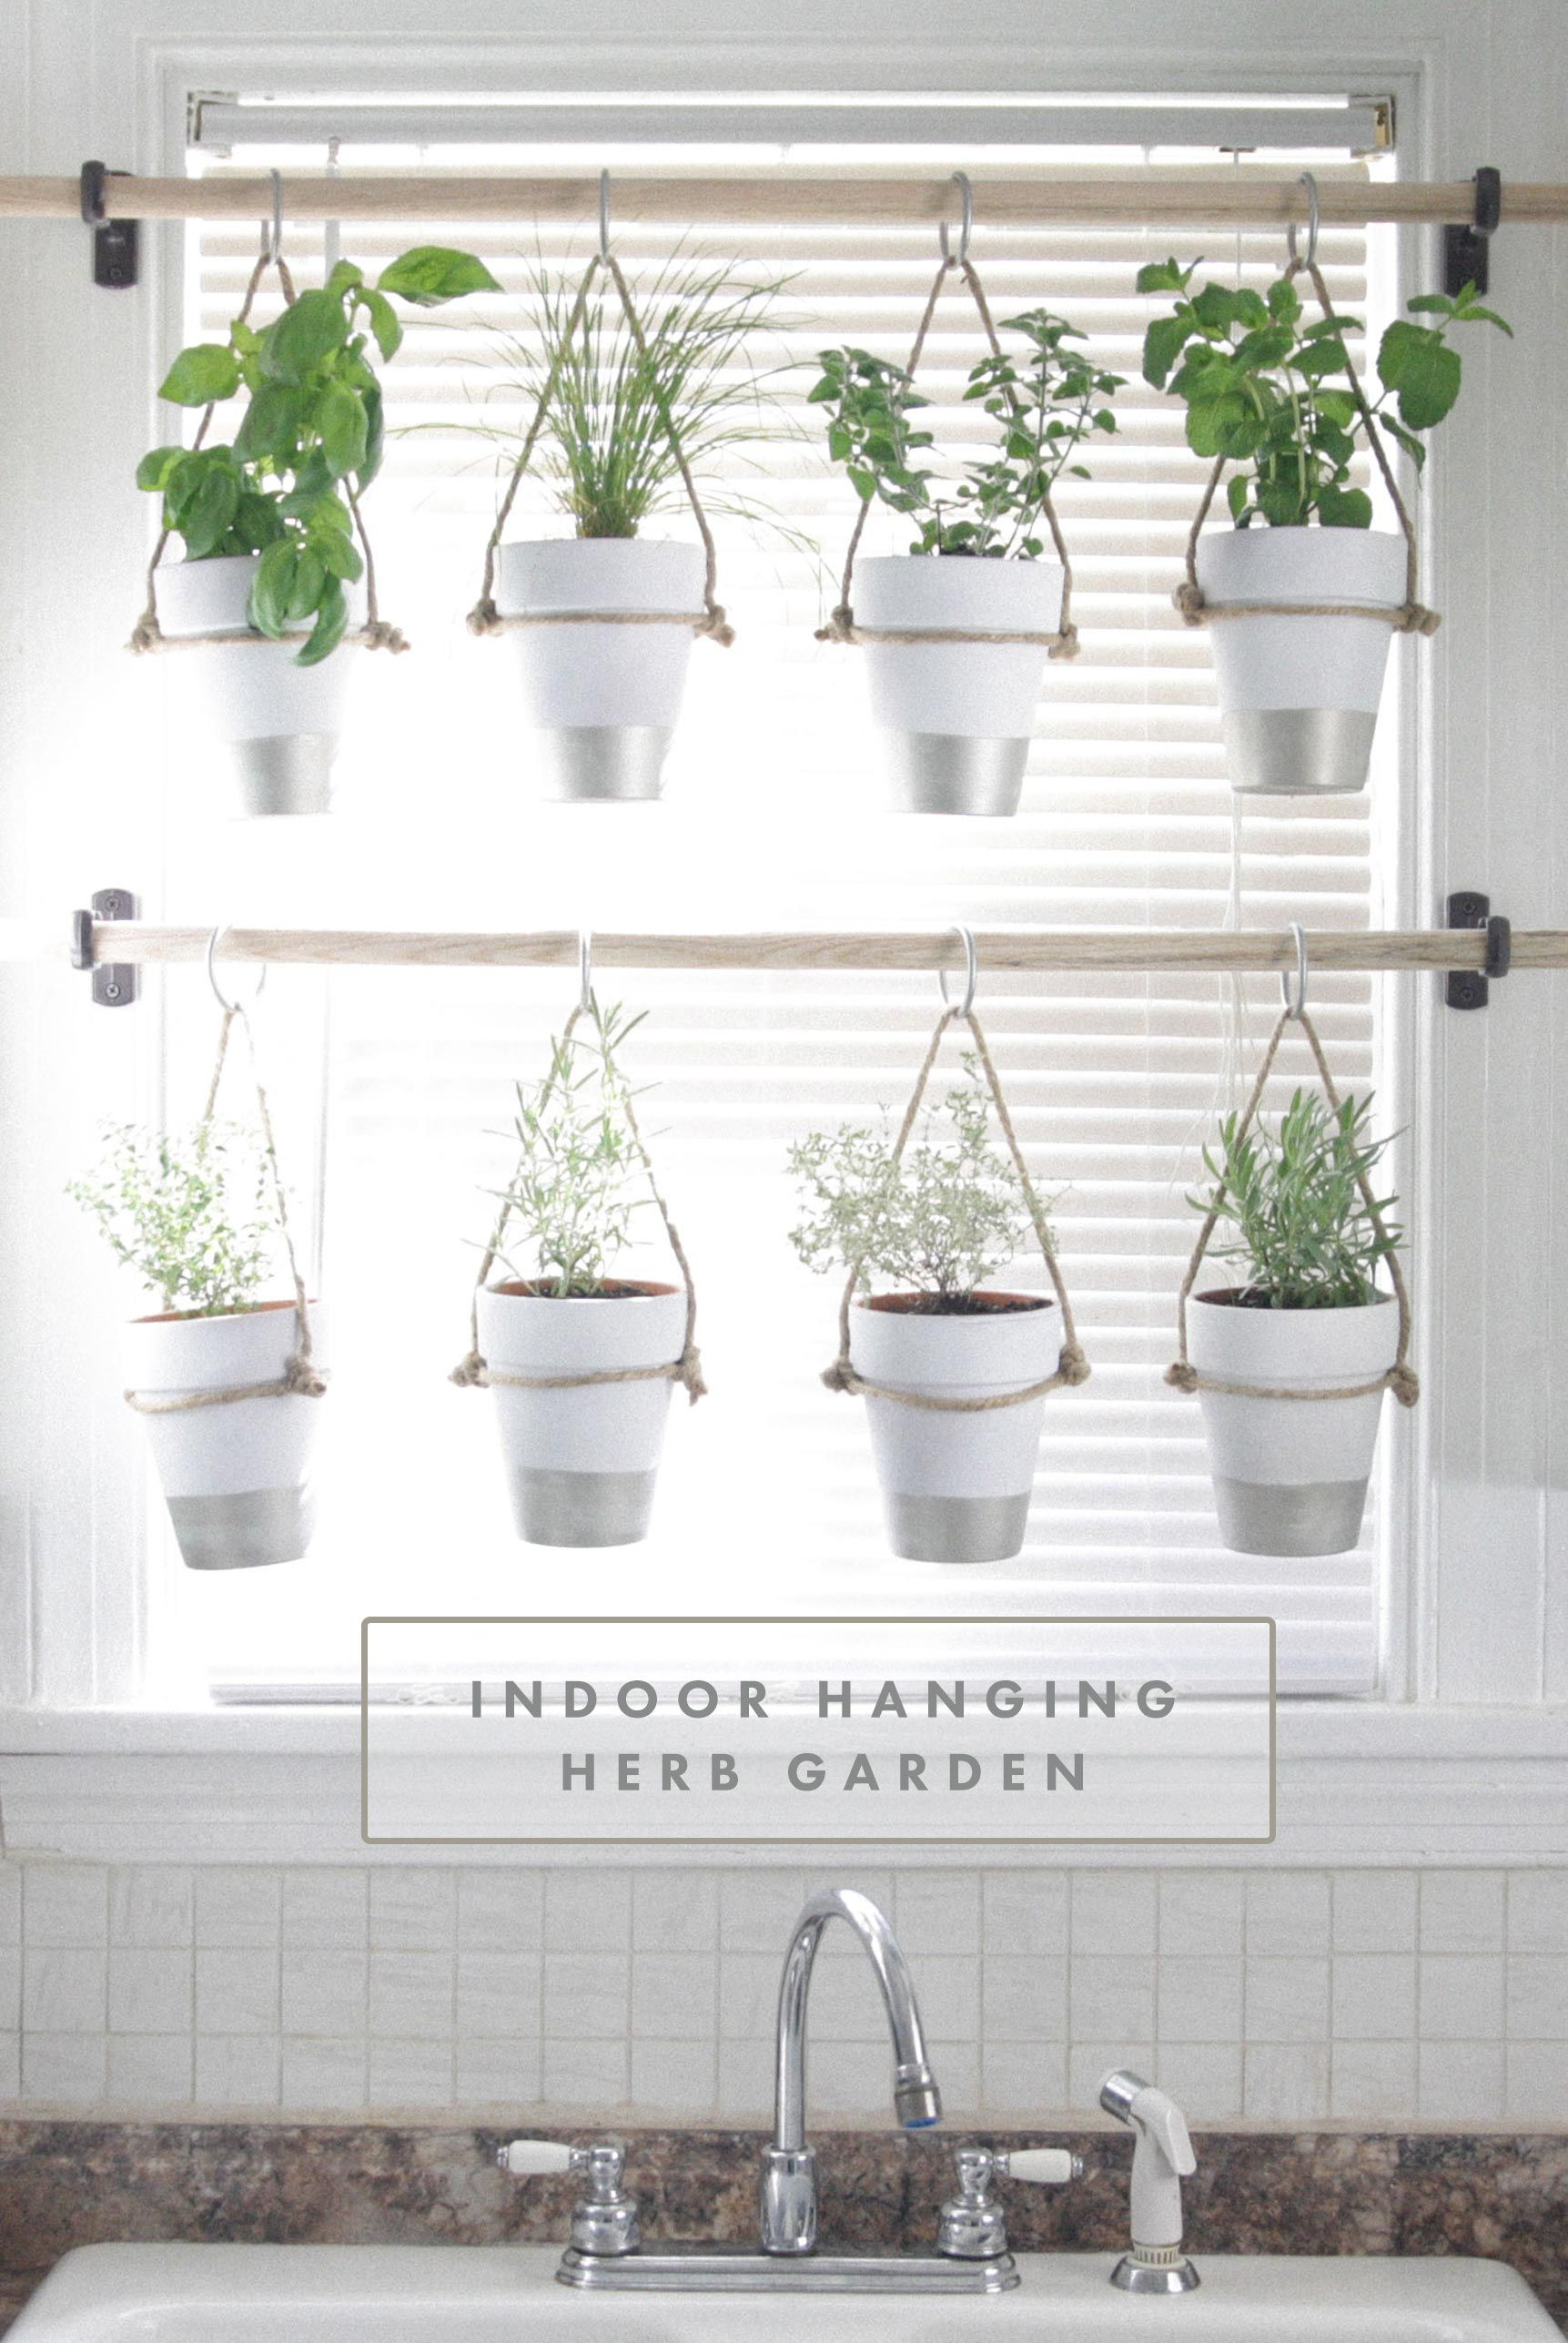 Diy indoor hanging herb garden learn how to make an easy budget diy indoor hanging herb garden learn how to make an easy budget friendly hanging herb garden for your window it will make your house prettier and fill workwithnaturefo